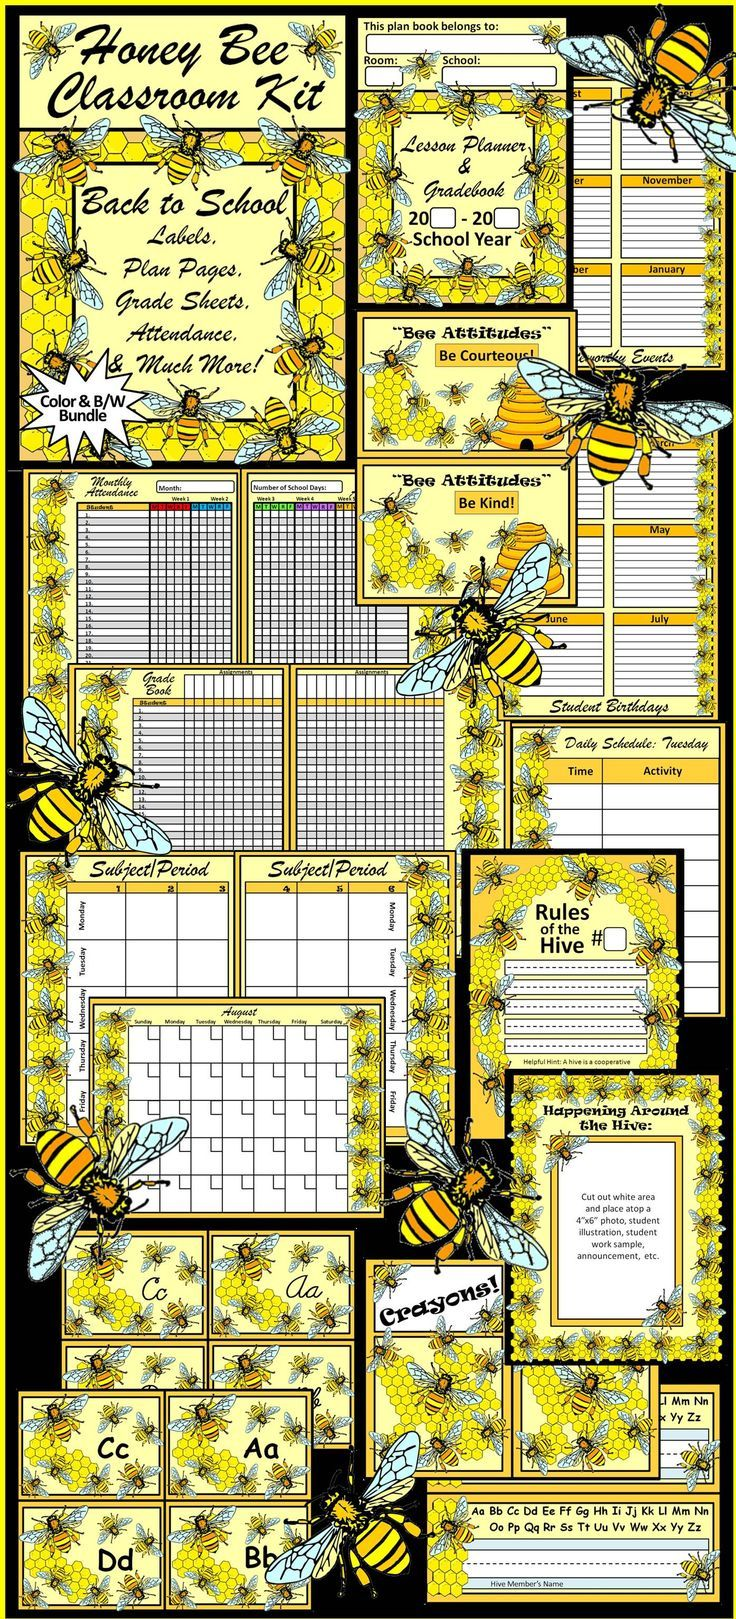 Honey Bee Classroom Kit Lesson Planner Packet Contains Beautiful Themed Management